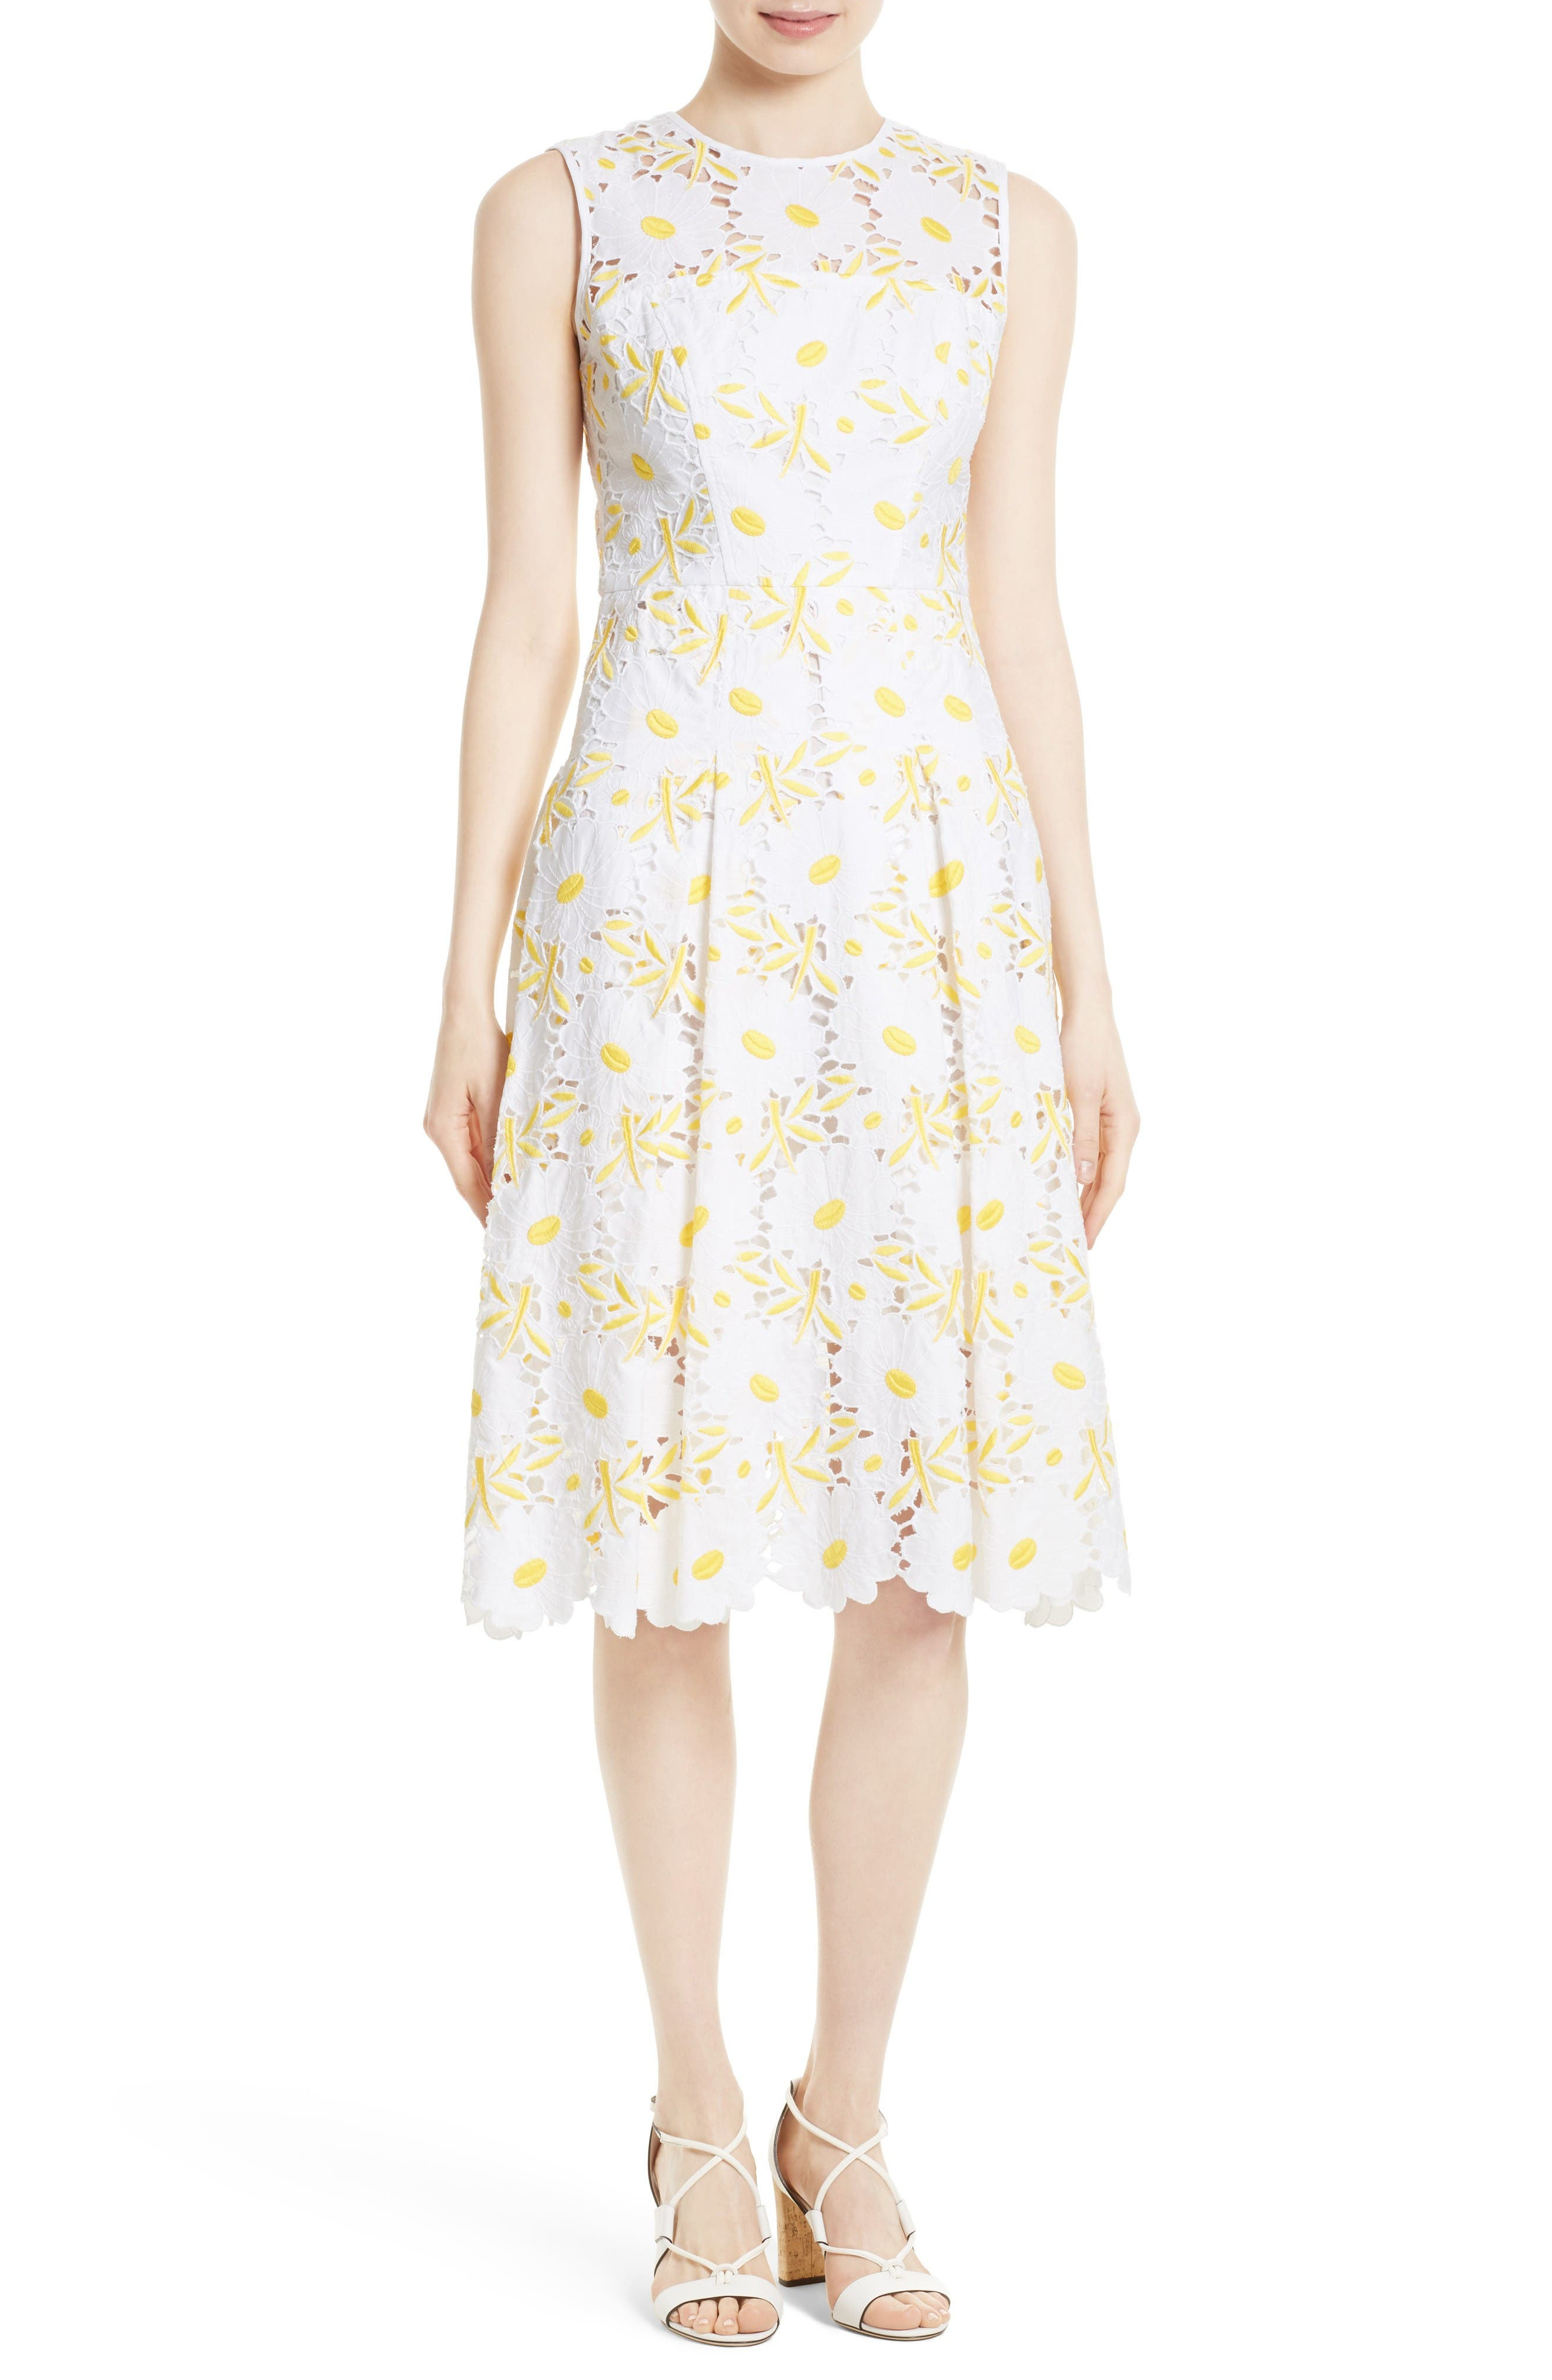 Milly Petal Eyelet Fit & Flare Dress